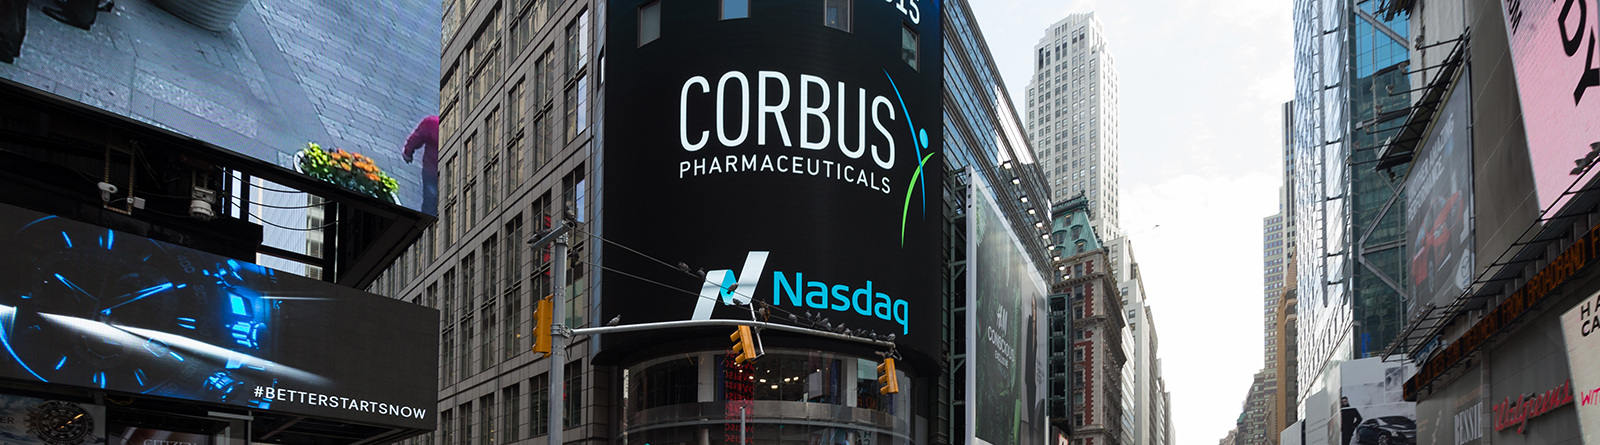 Corbus Pharmaceuticals Reports First Quarter Financial Results and Corporate Updates Banner